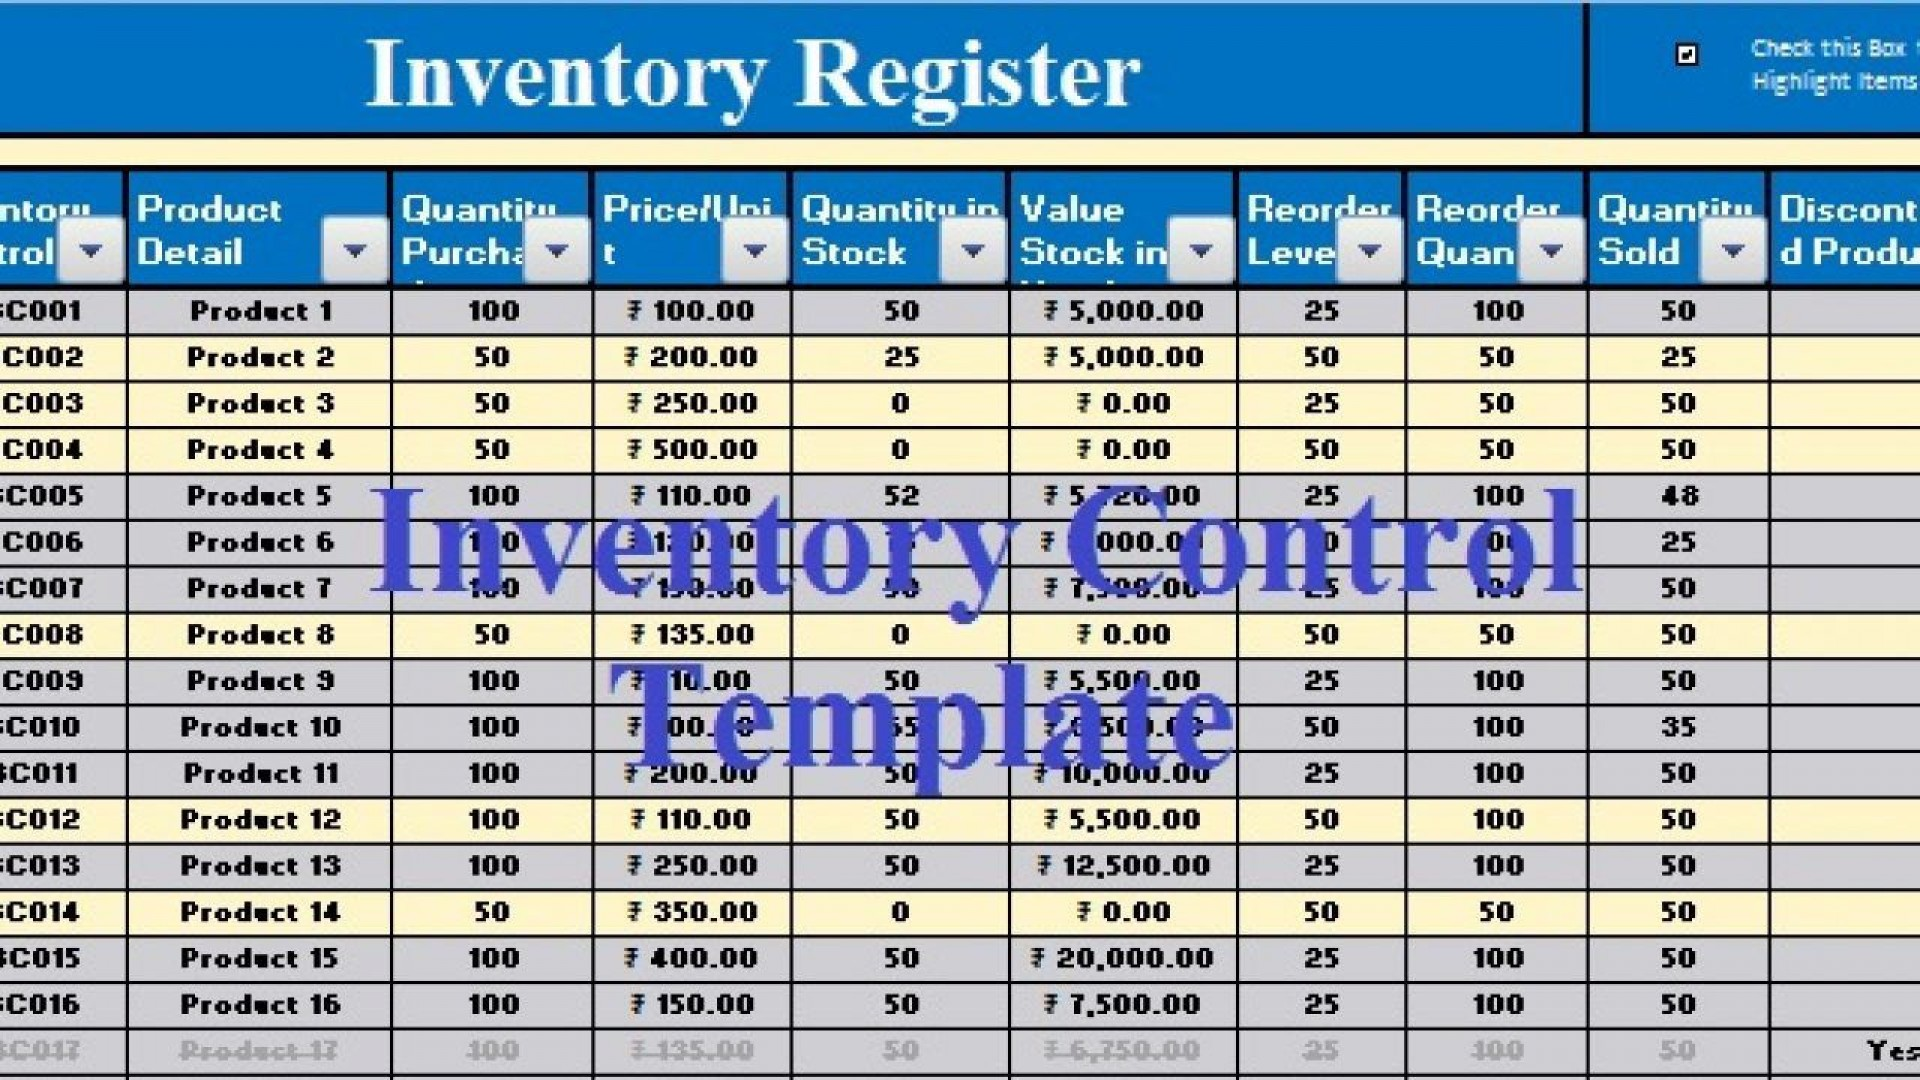 005 Beautiful Excel Stock Inventory Template With Formula Example  Formulas1920